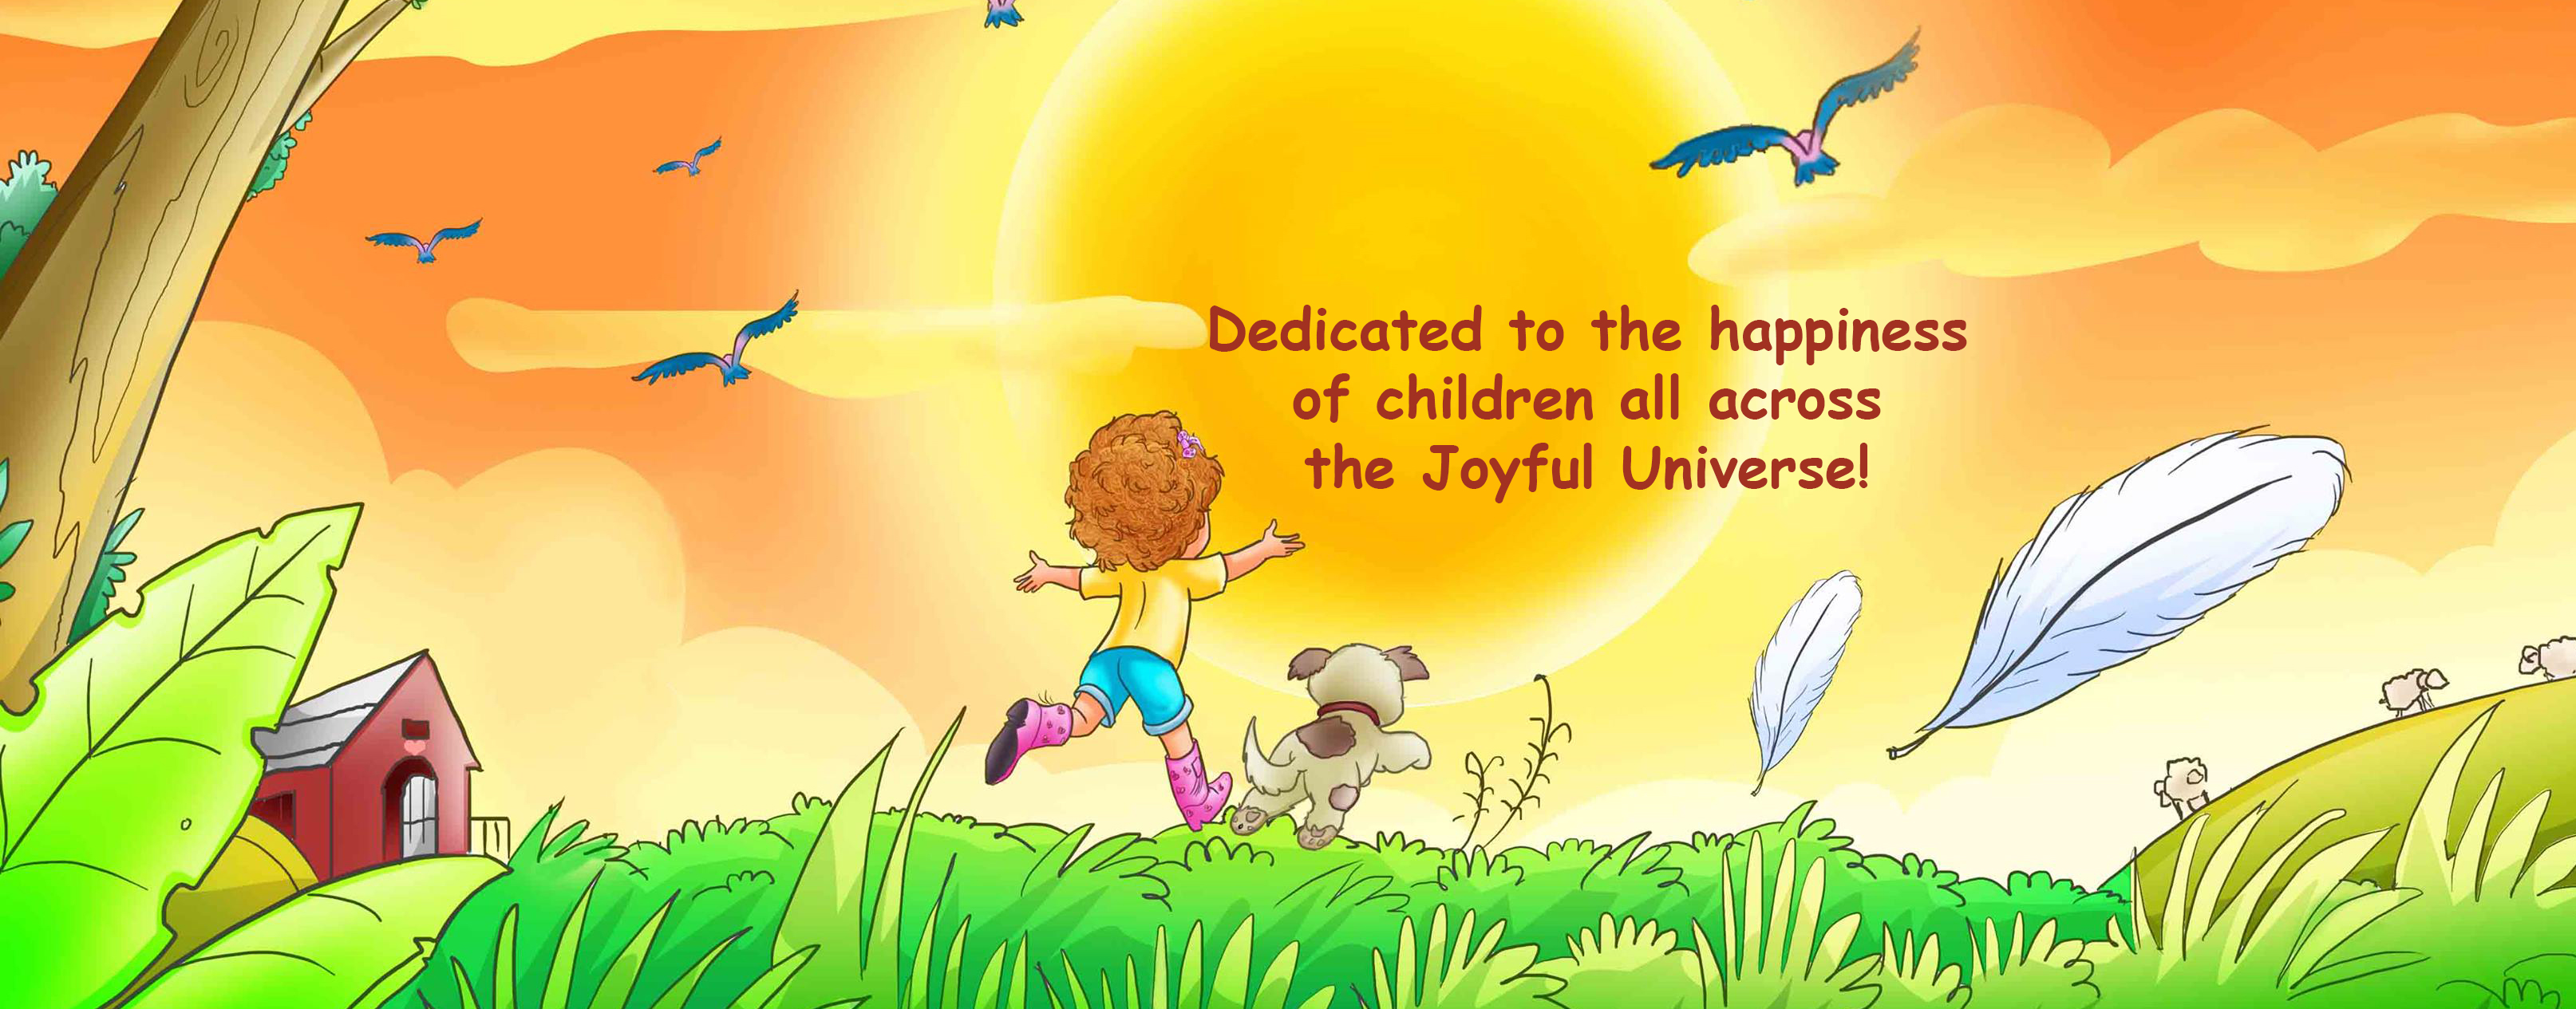 Joy Kids Universe  Law of Attraction for Children